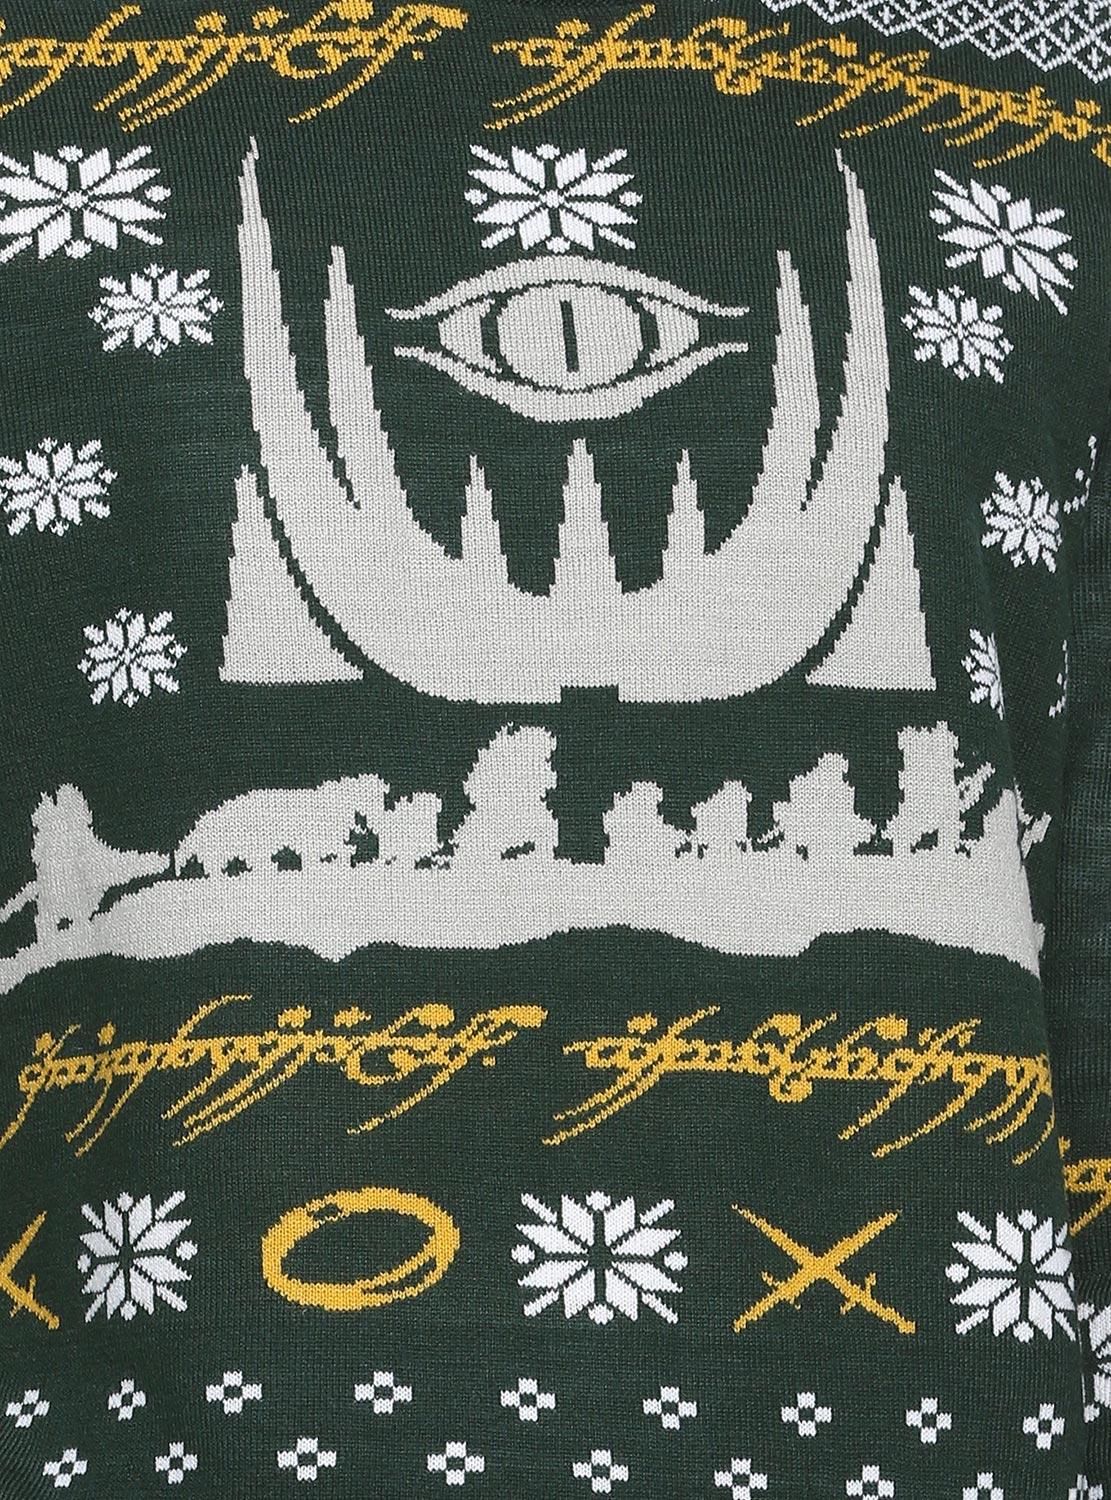 The Lord Of The Rings Christmas Sweater